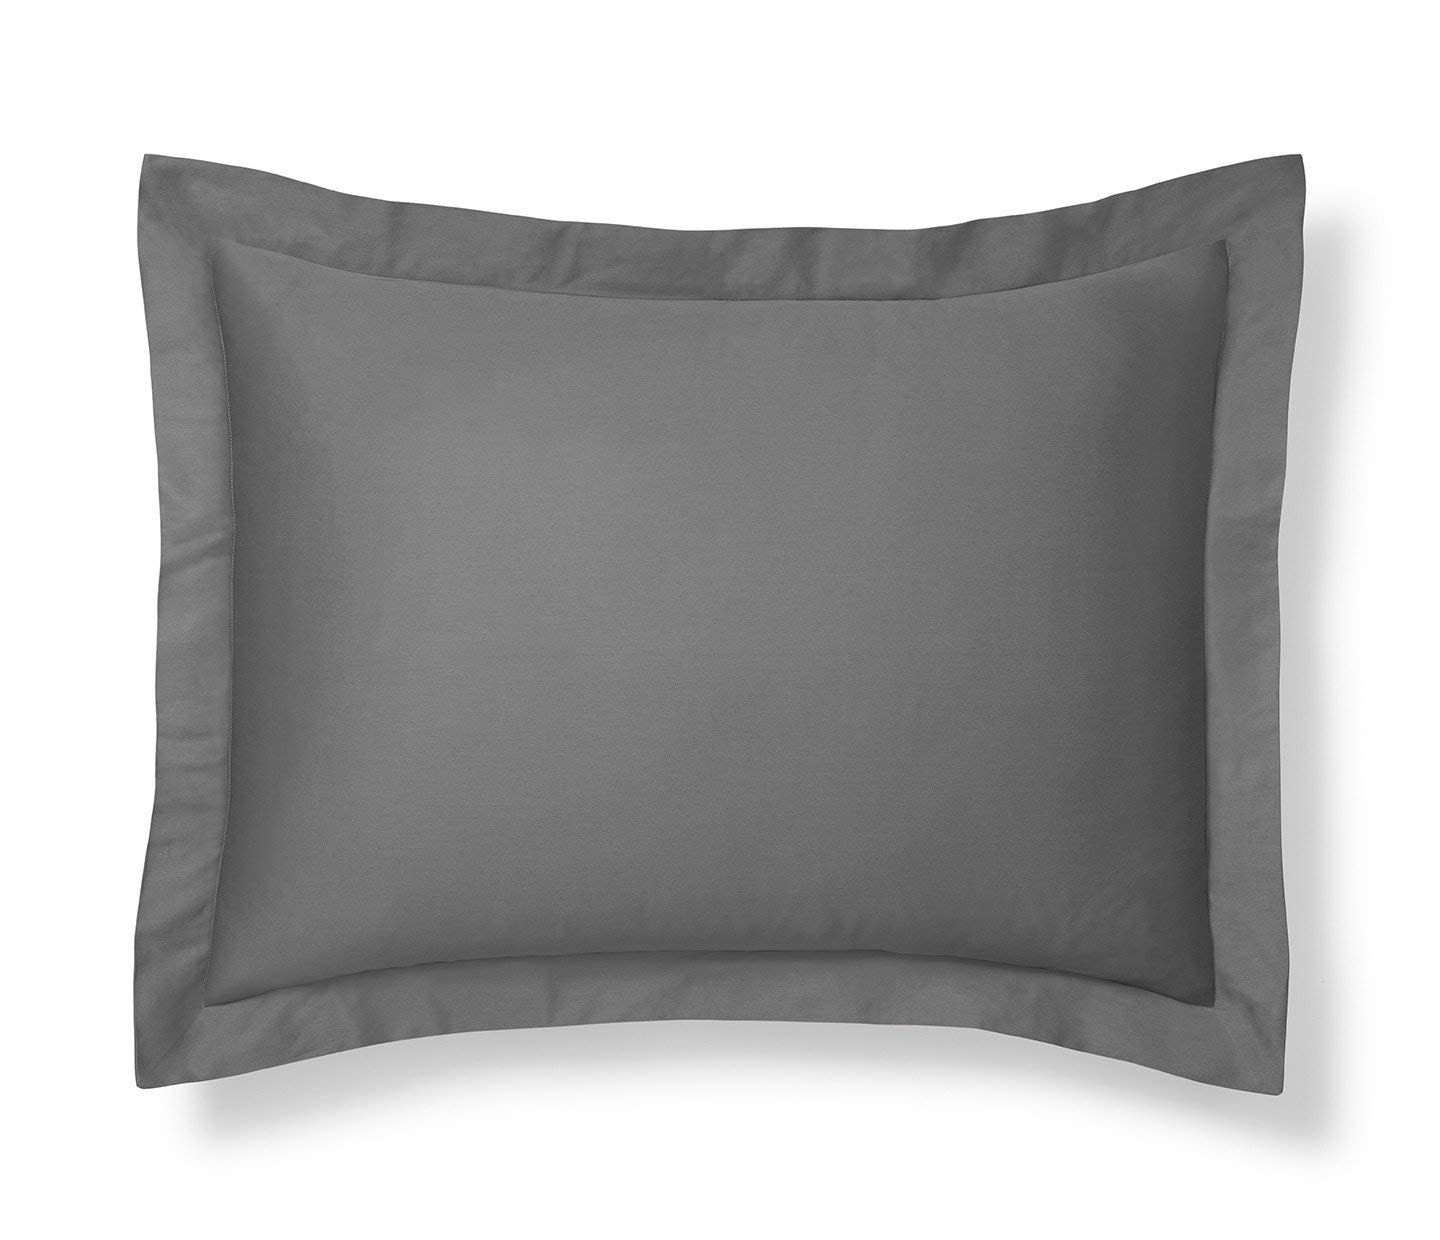 New 550 Thread Count Natural Cotton Euro Pillow Shams with 2 inch Border Silver Gray, King 20x40 Pillow Shams Set of 2 Silver Gray, King 20x40